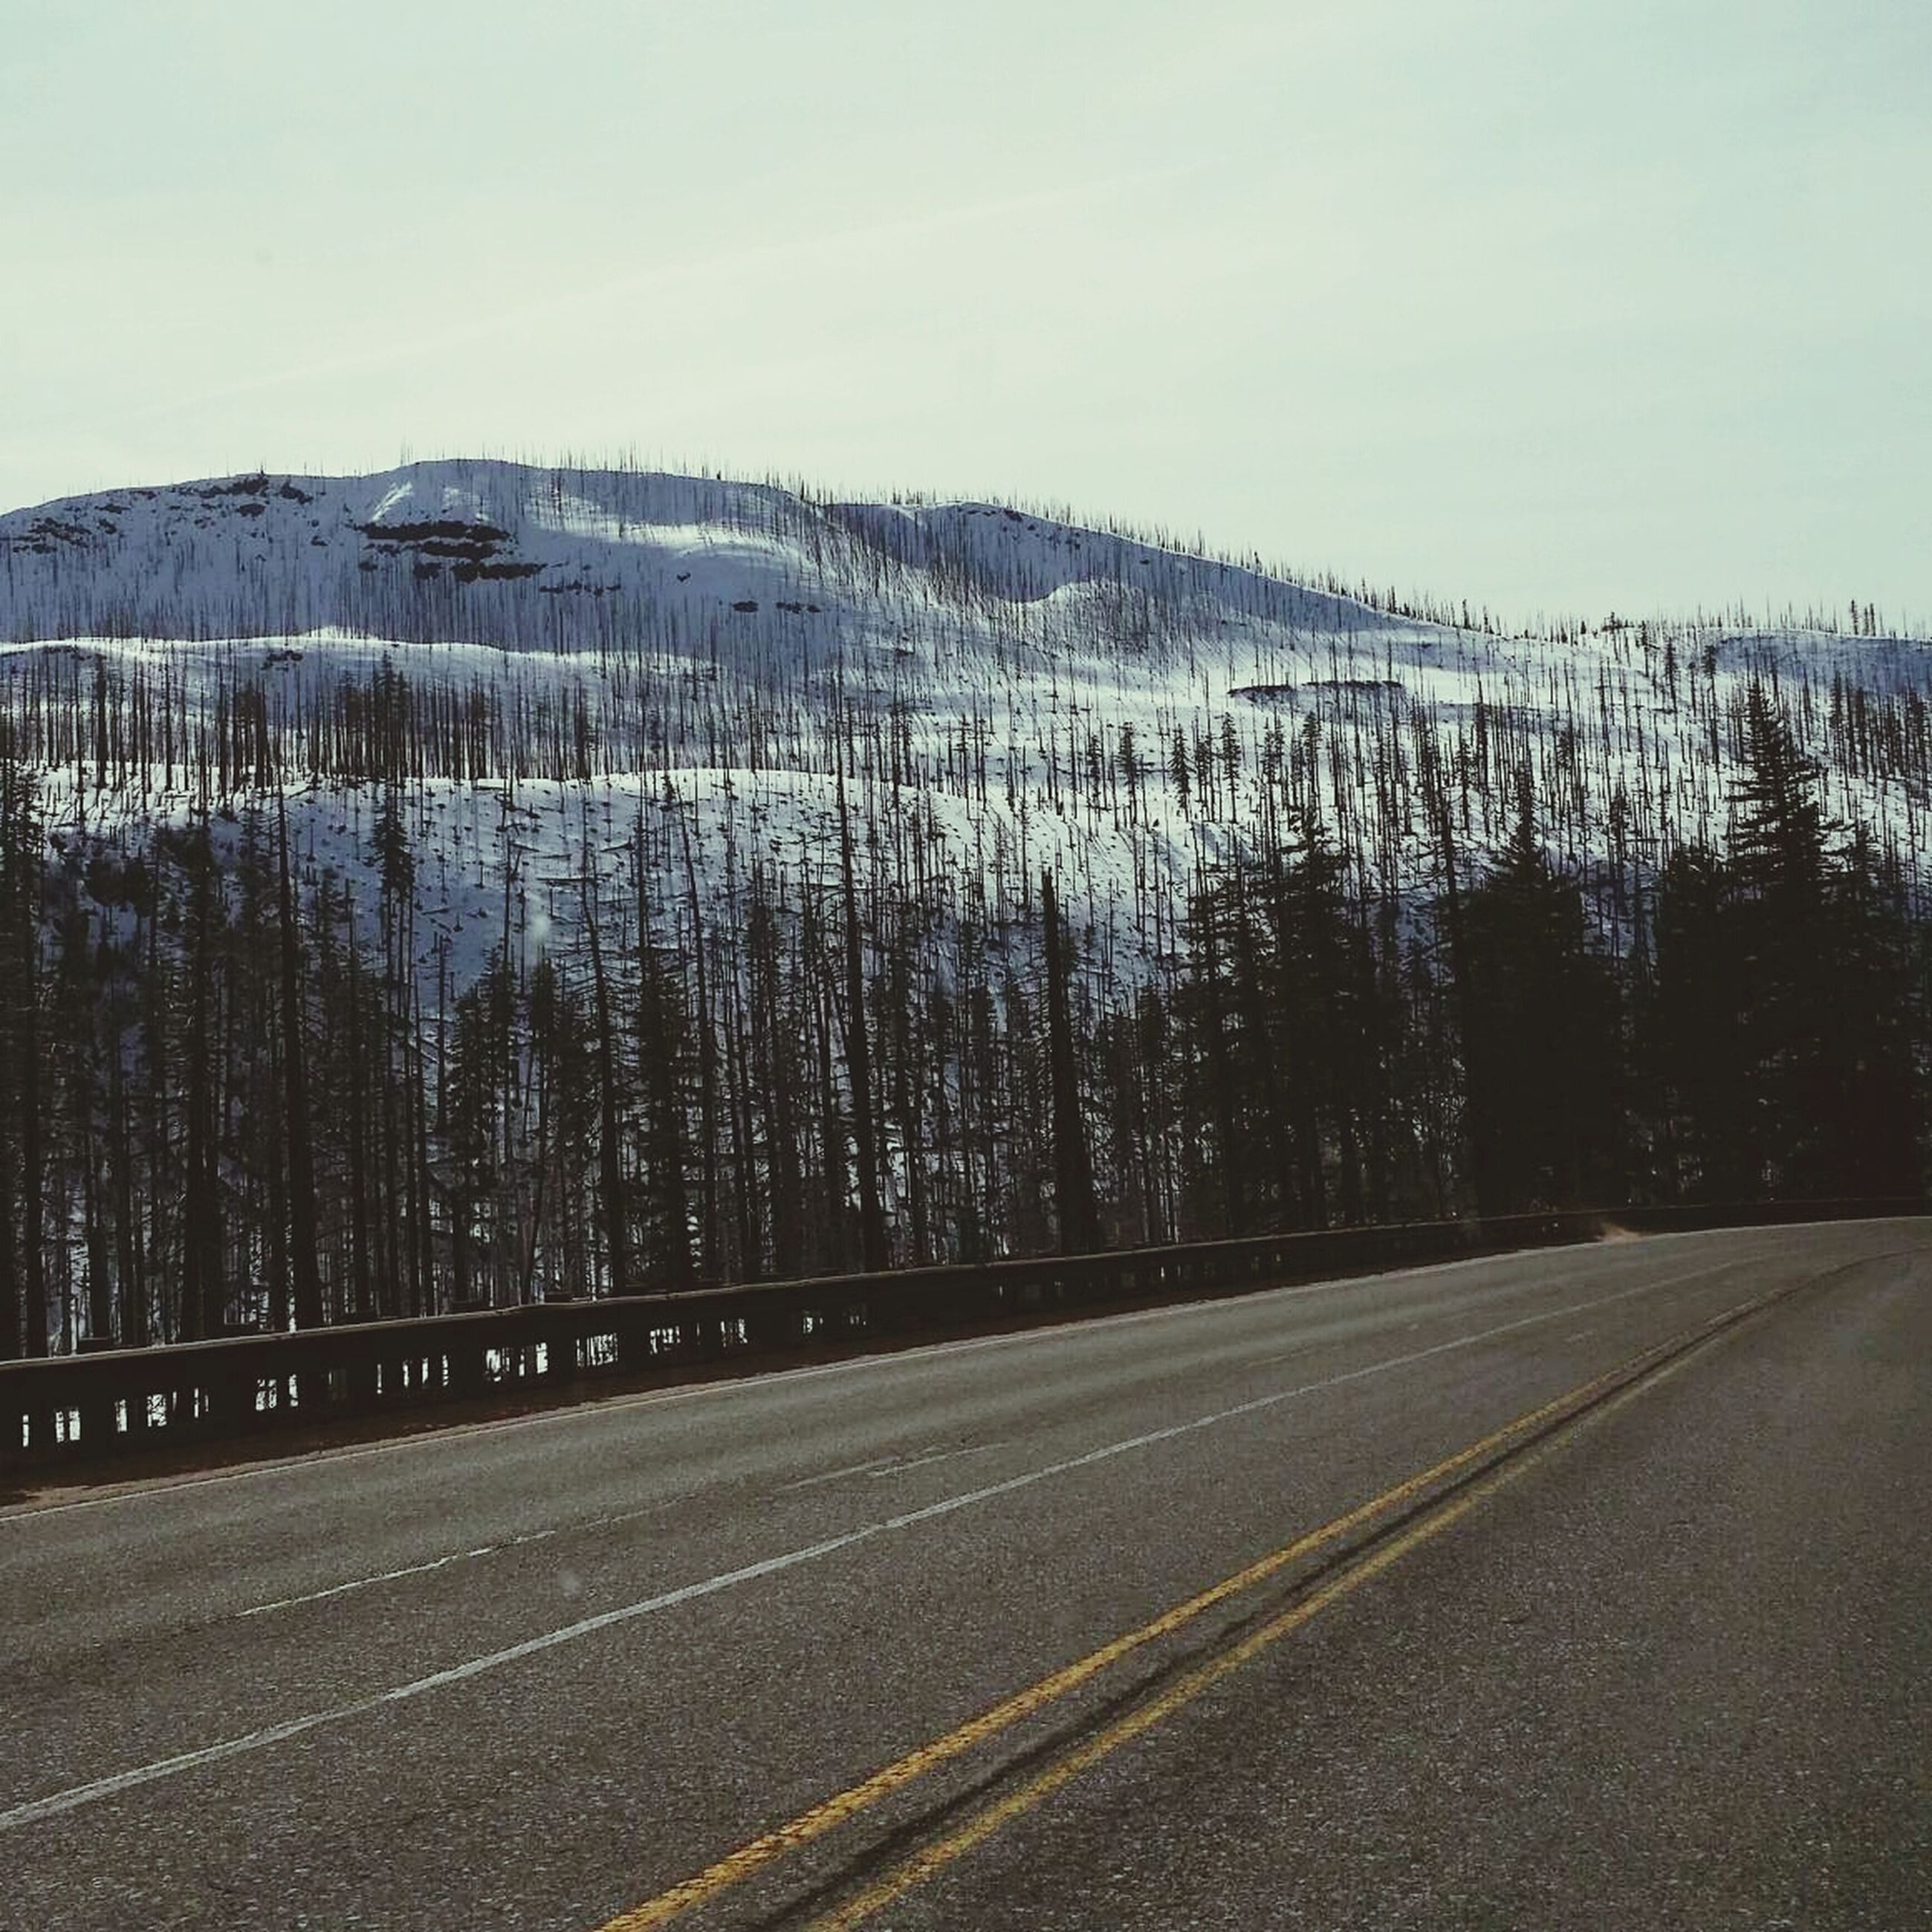 road, transportation, the way forward, sky, road marking, mountain, street, diminishing perspective, vanishing point, country road, tranquil scene, tree, empty, asphalt, landscape, day, bare tree, nature, tranquility, outdoors